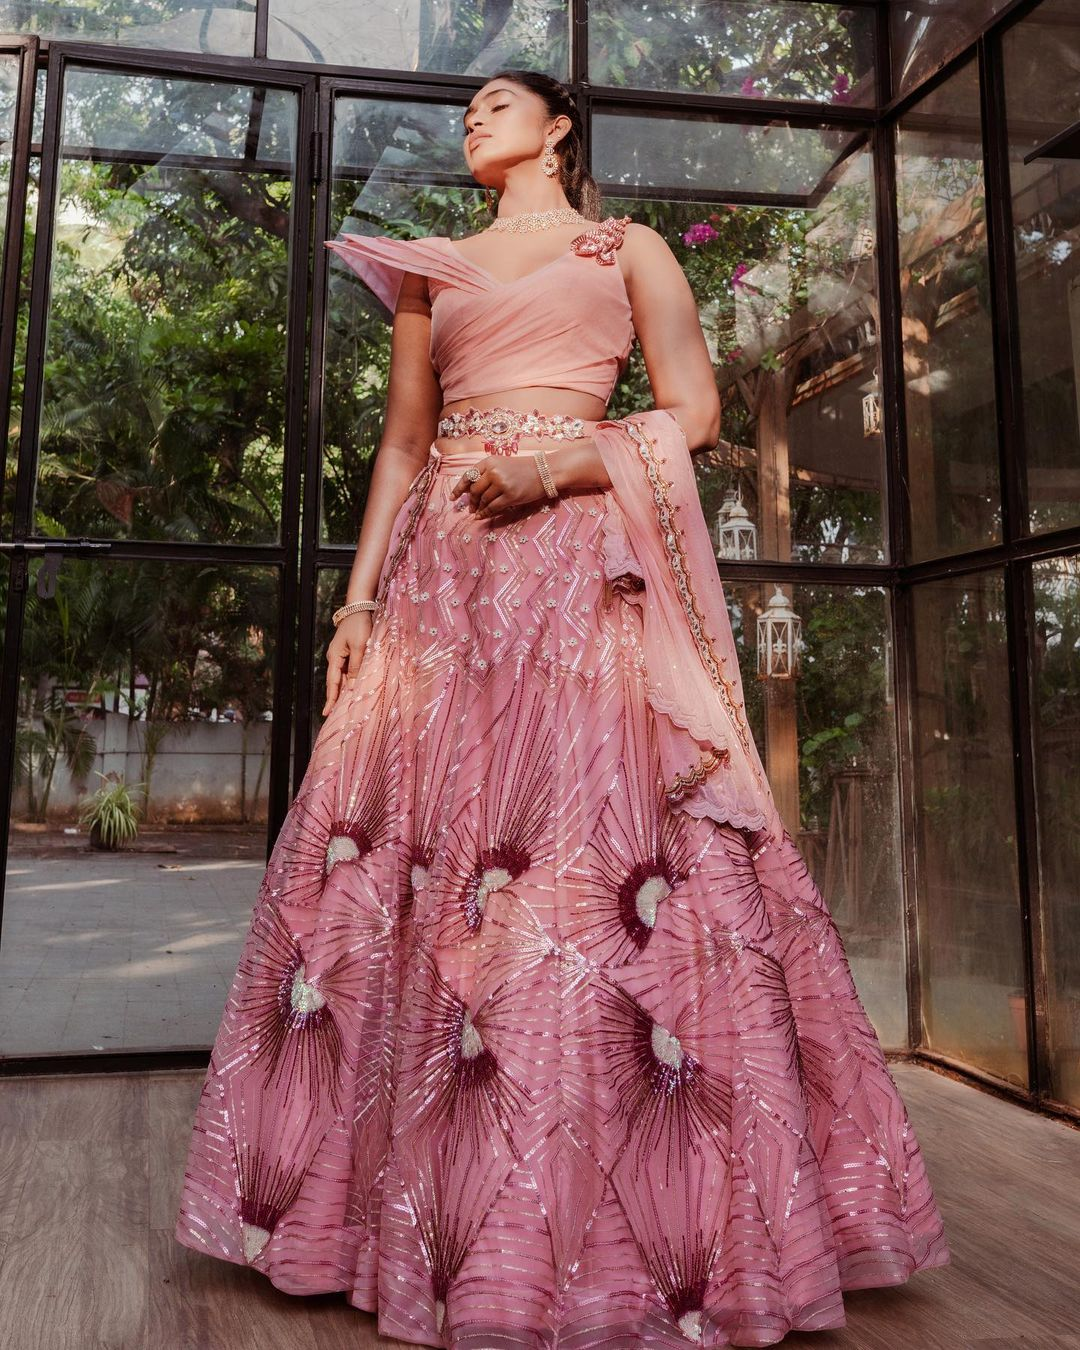 Millennial Bride! This wedding season step into this sculpted croptop and bridal lehenga and make a style statement! Invoking a vibe of grace and glamour this one is for  daring brides! . To customize whatsapp 9442293096. 2021-07-20